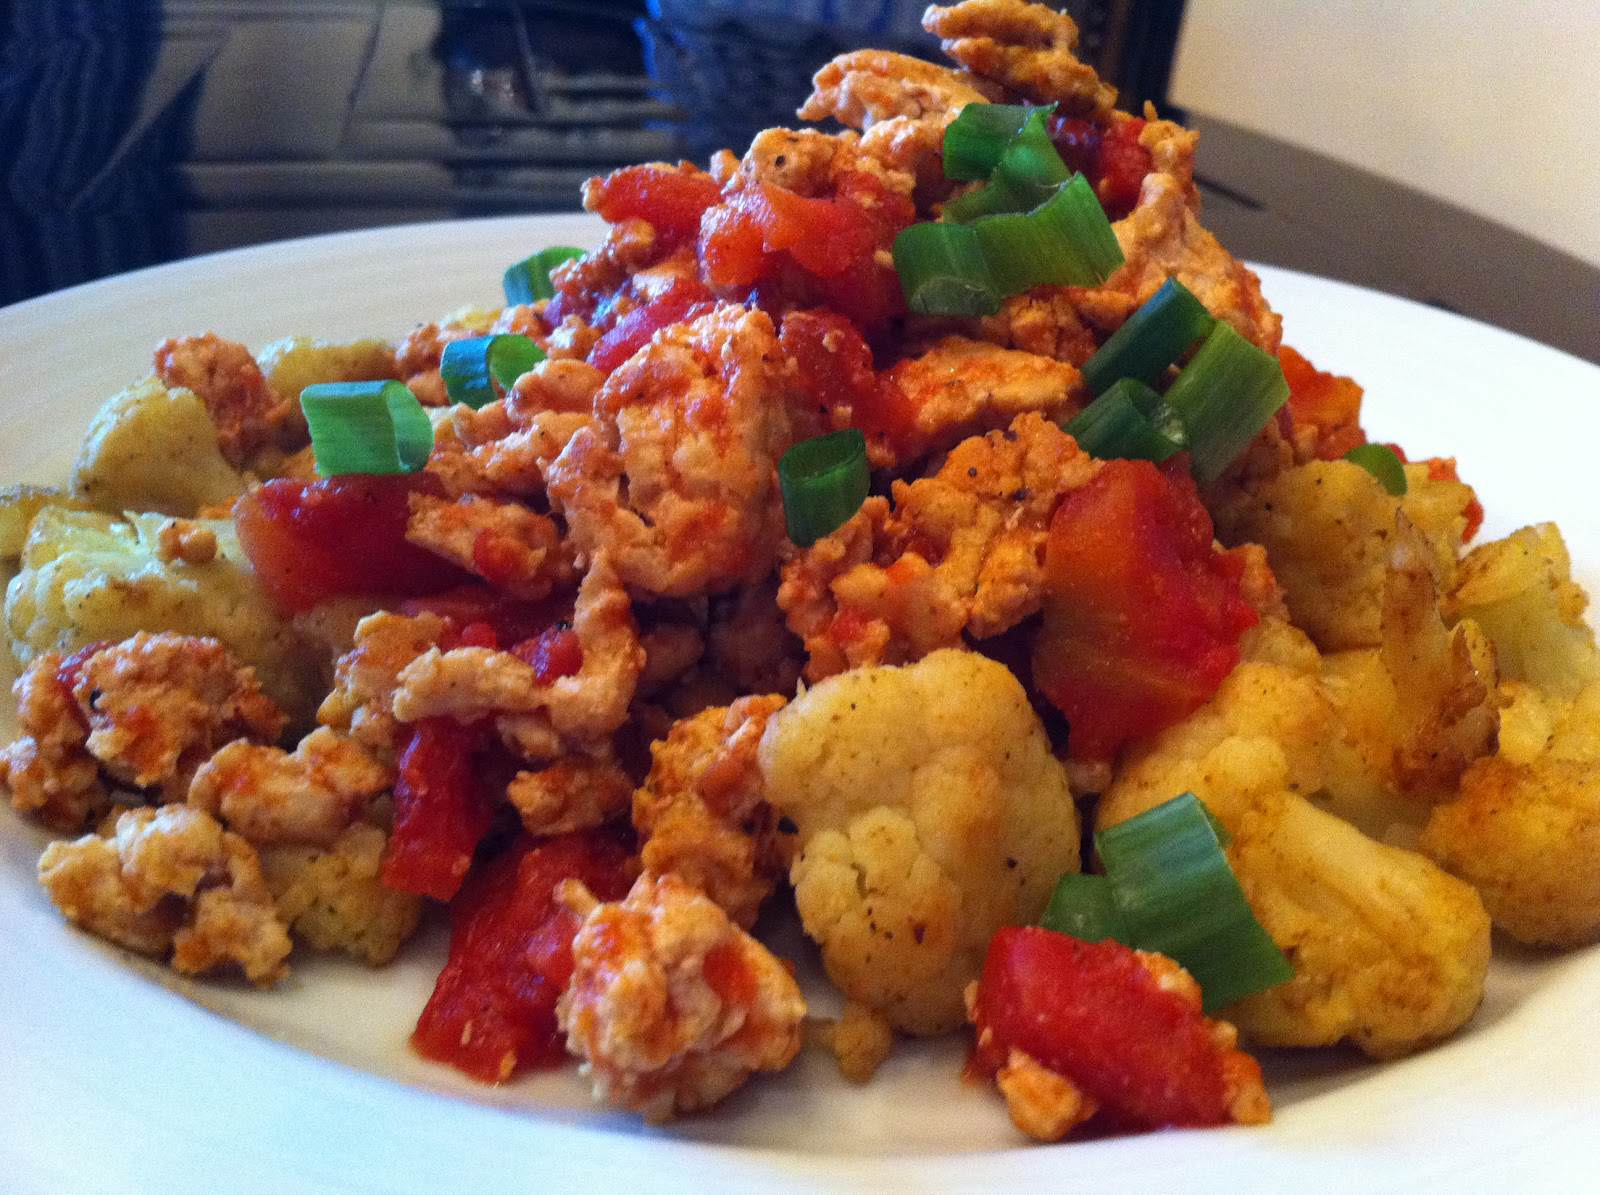 Spicy Sriracha Chicken and Vegetables